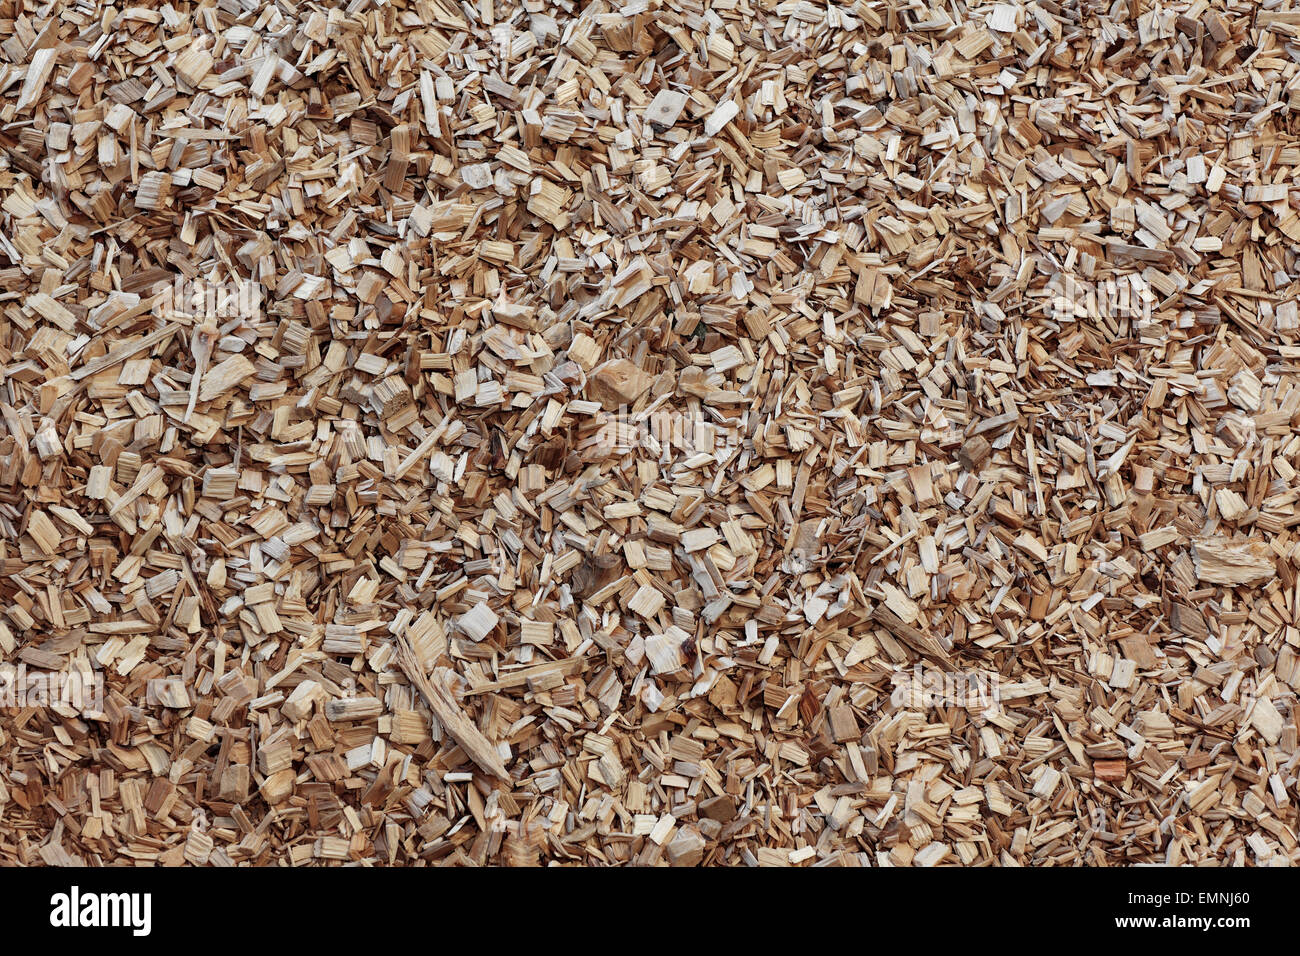 Wood Chips For Ground Cover ~ Wood chip bark ground cover stock photos